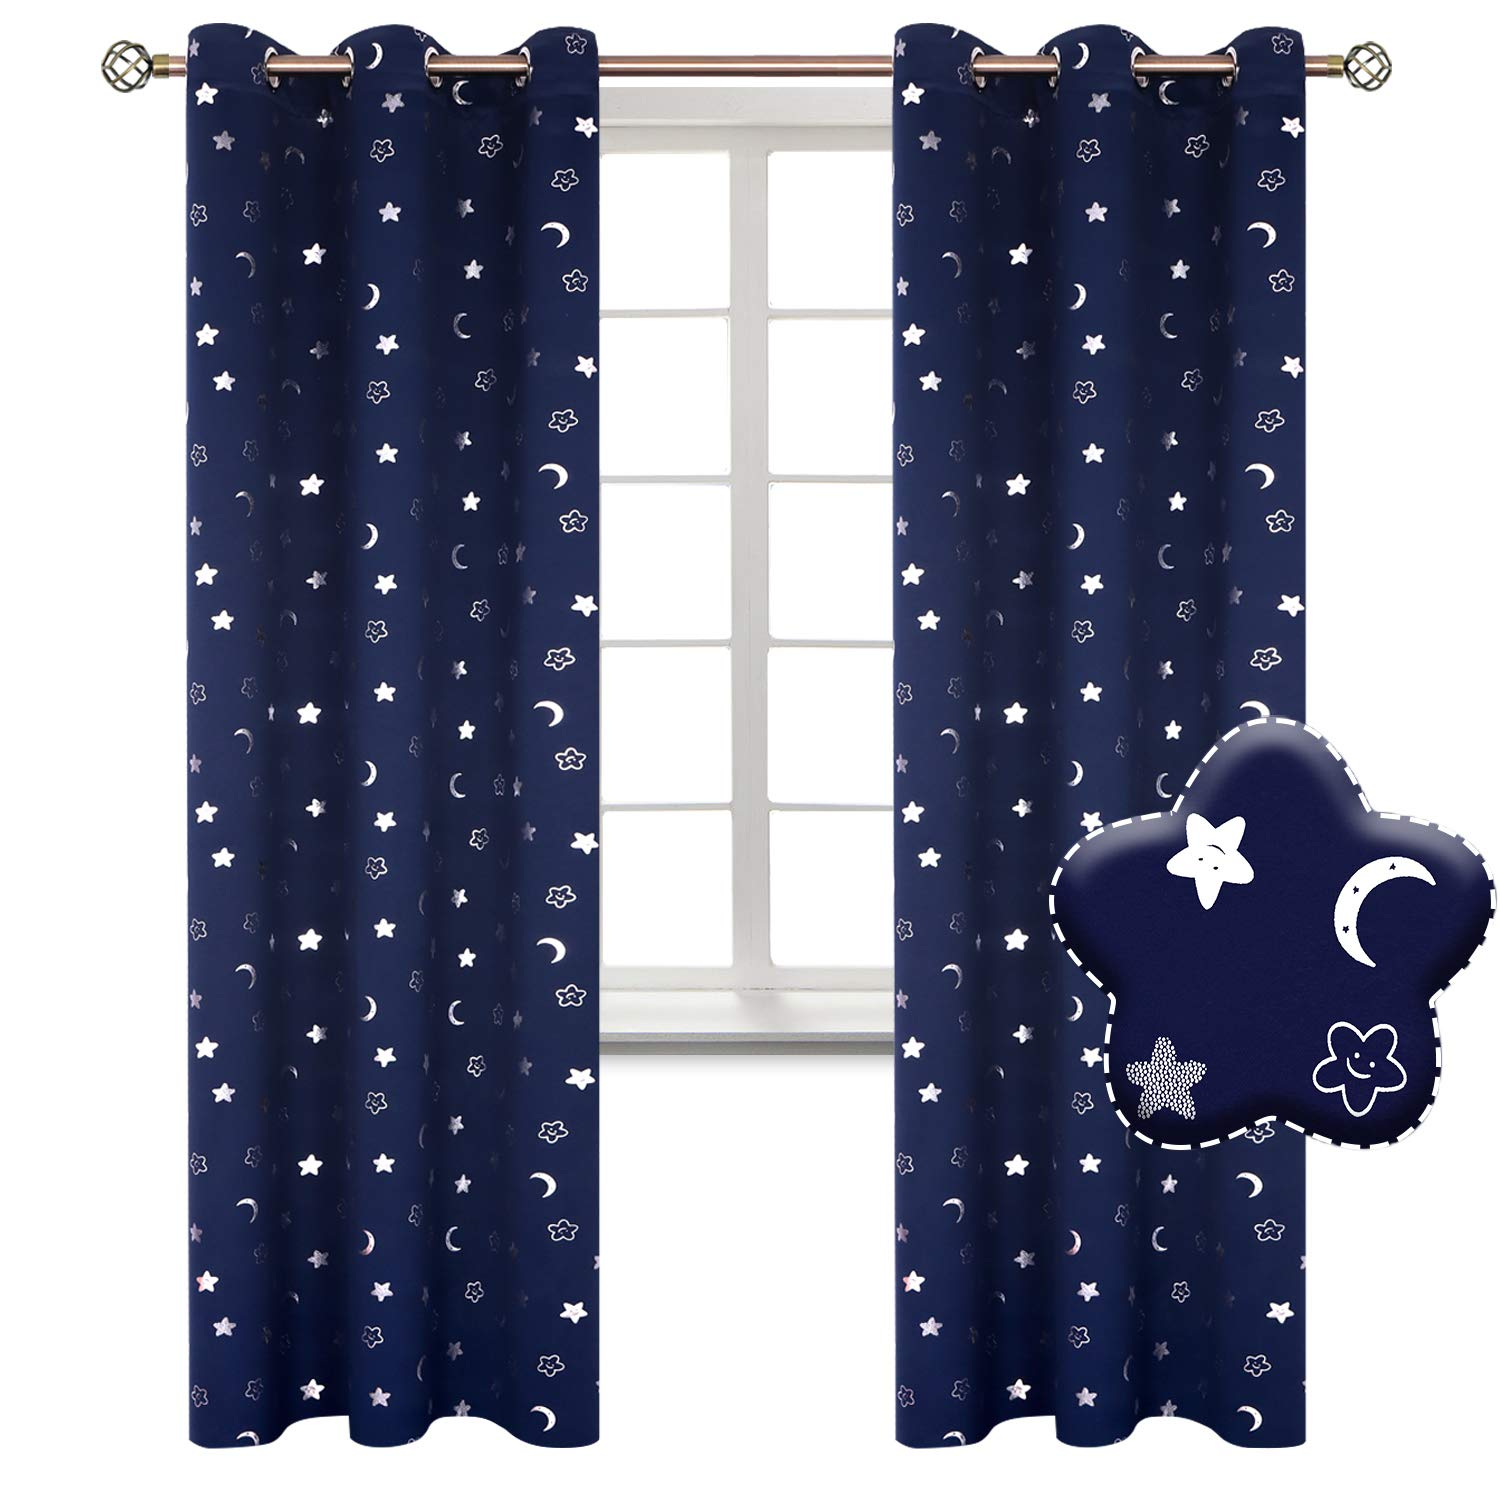 BGment Moon and Stars Blackout Curtains for Boys Bedroom, Grommet Thermal Insulated Room Darkening Printed Kids Curtains, 2 Panels of 42 x 84 Inch, Navy by BGment